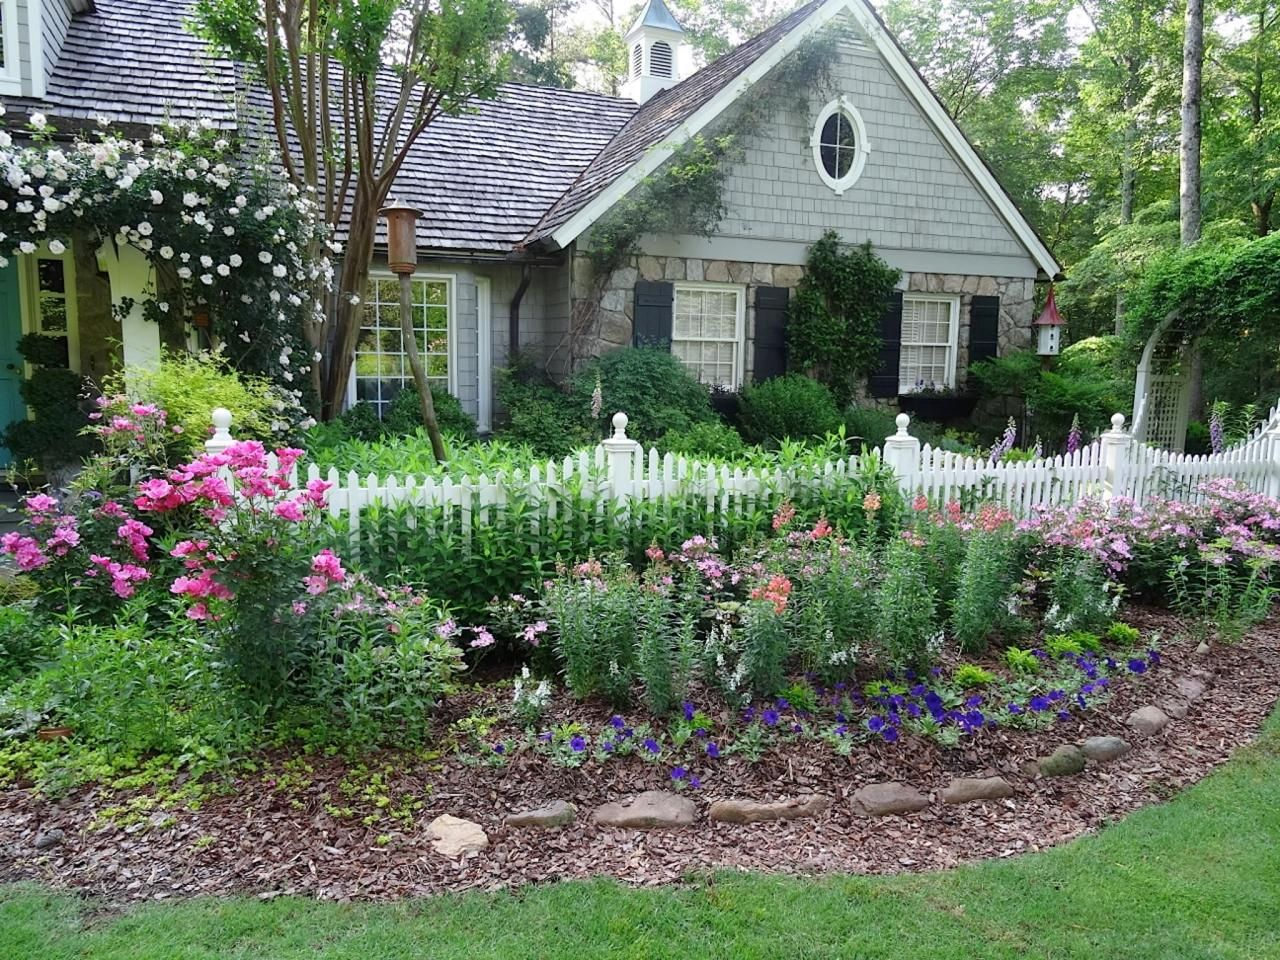 A White Picket Fence Adds To The Sweet Setting Of An